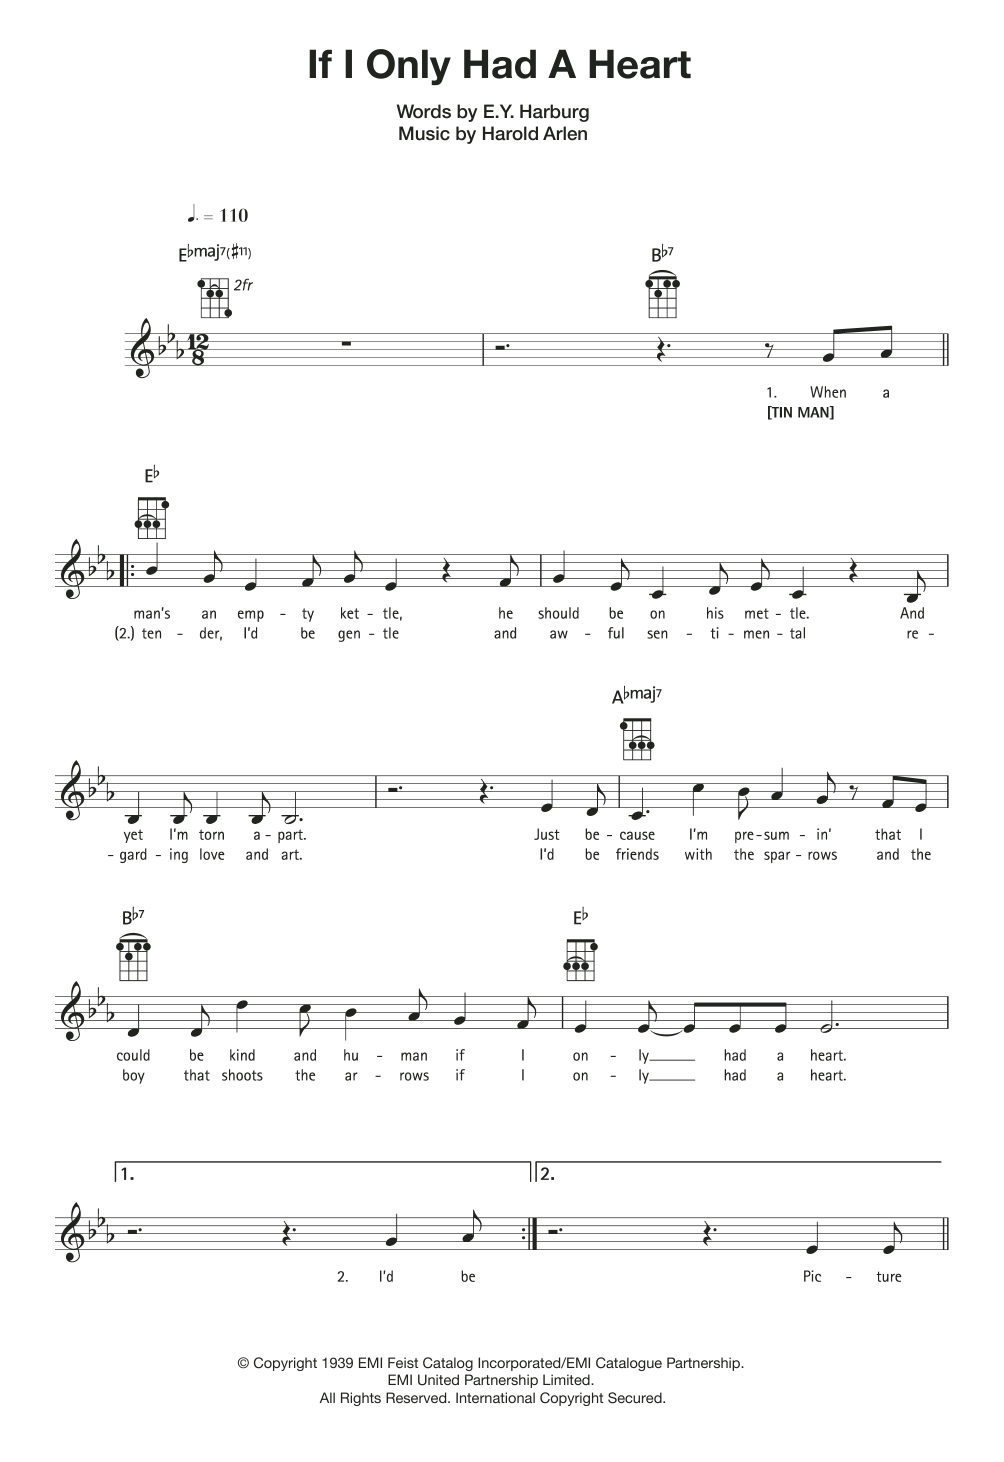 If I Only Had A Heart Sheet Music